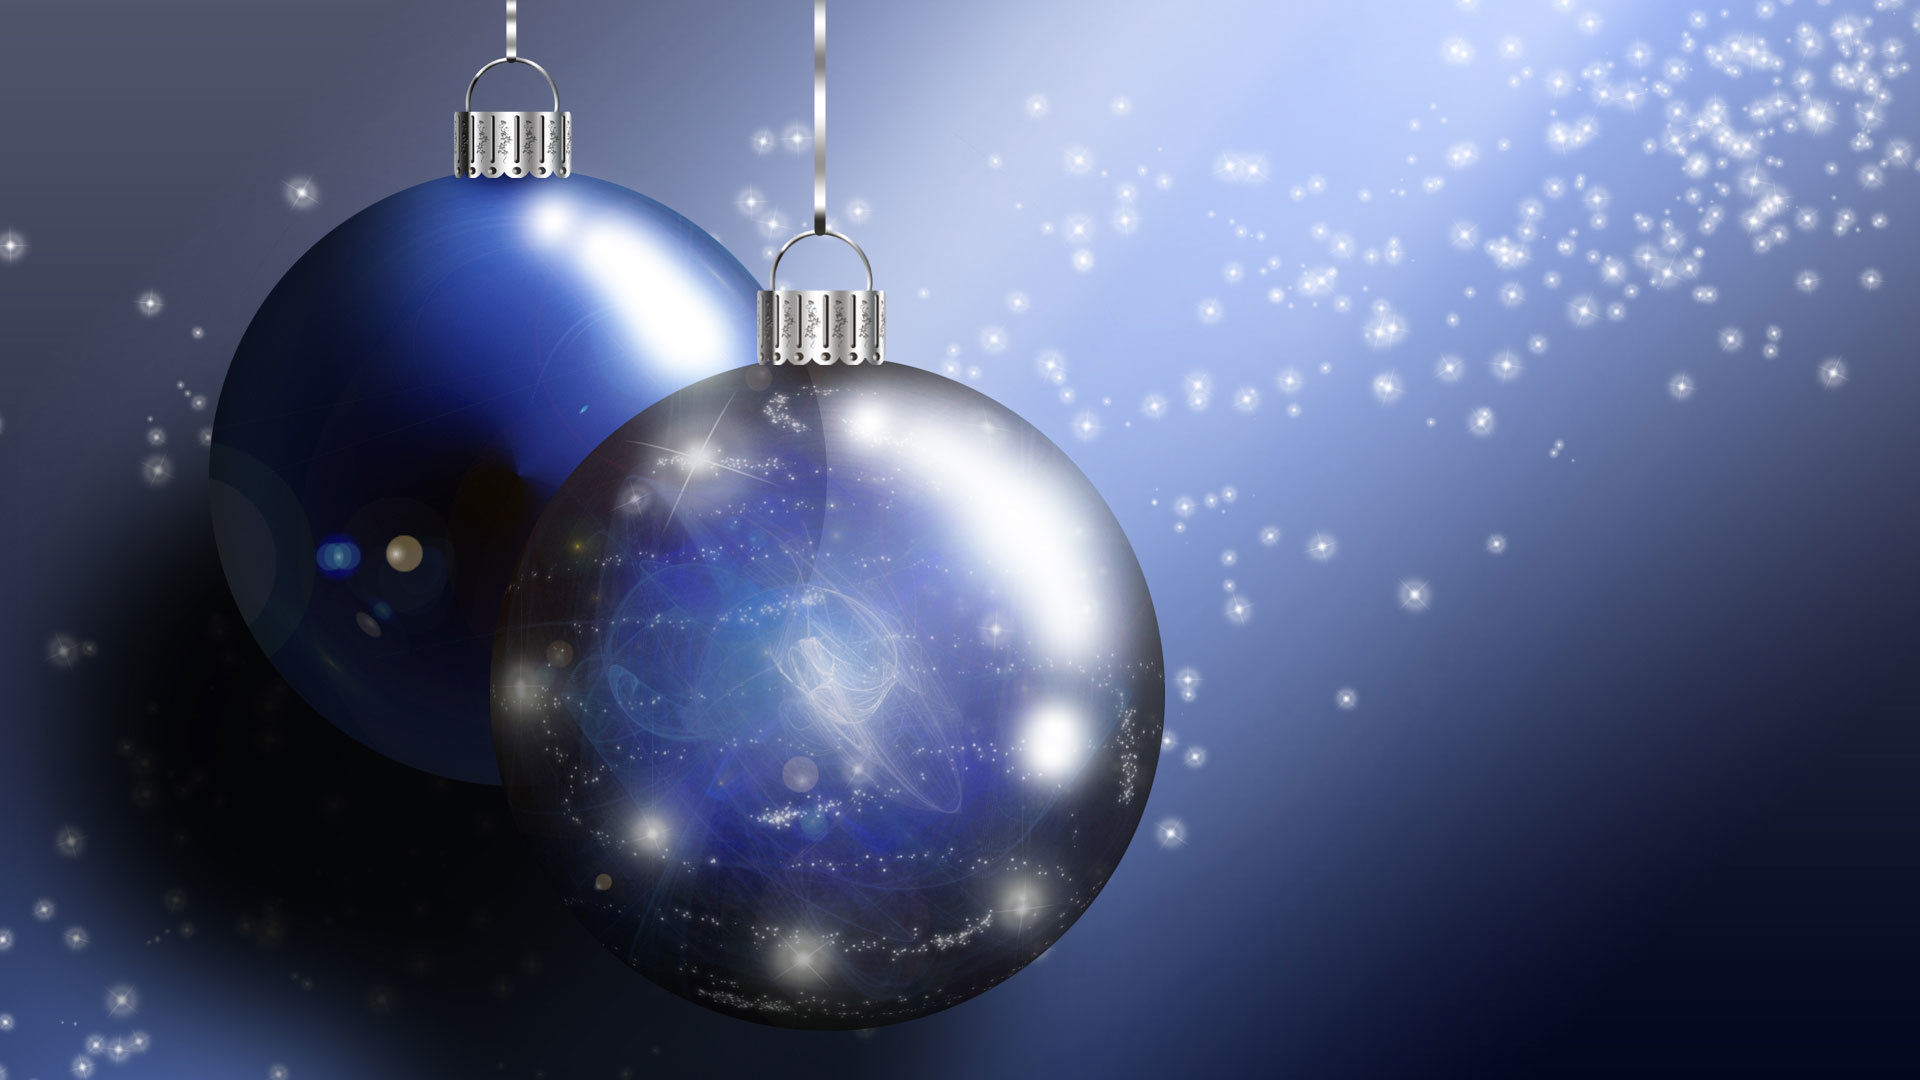 Free Christmas Ornaments Decorations High Quality Background ID435715 For Hd 1920x1080 Computer